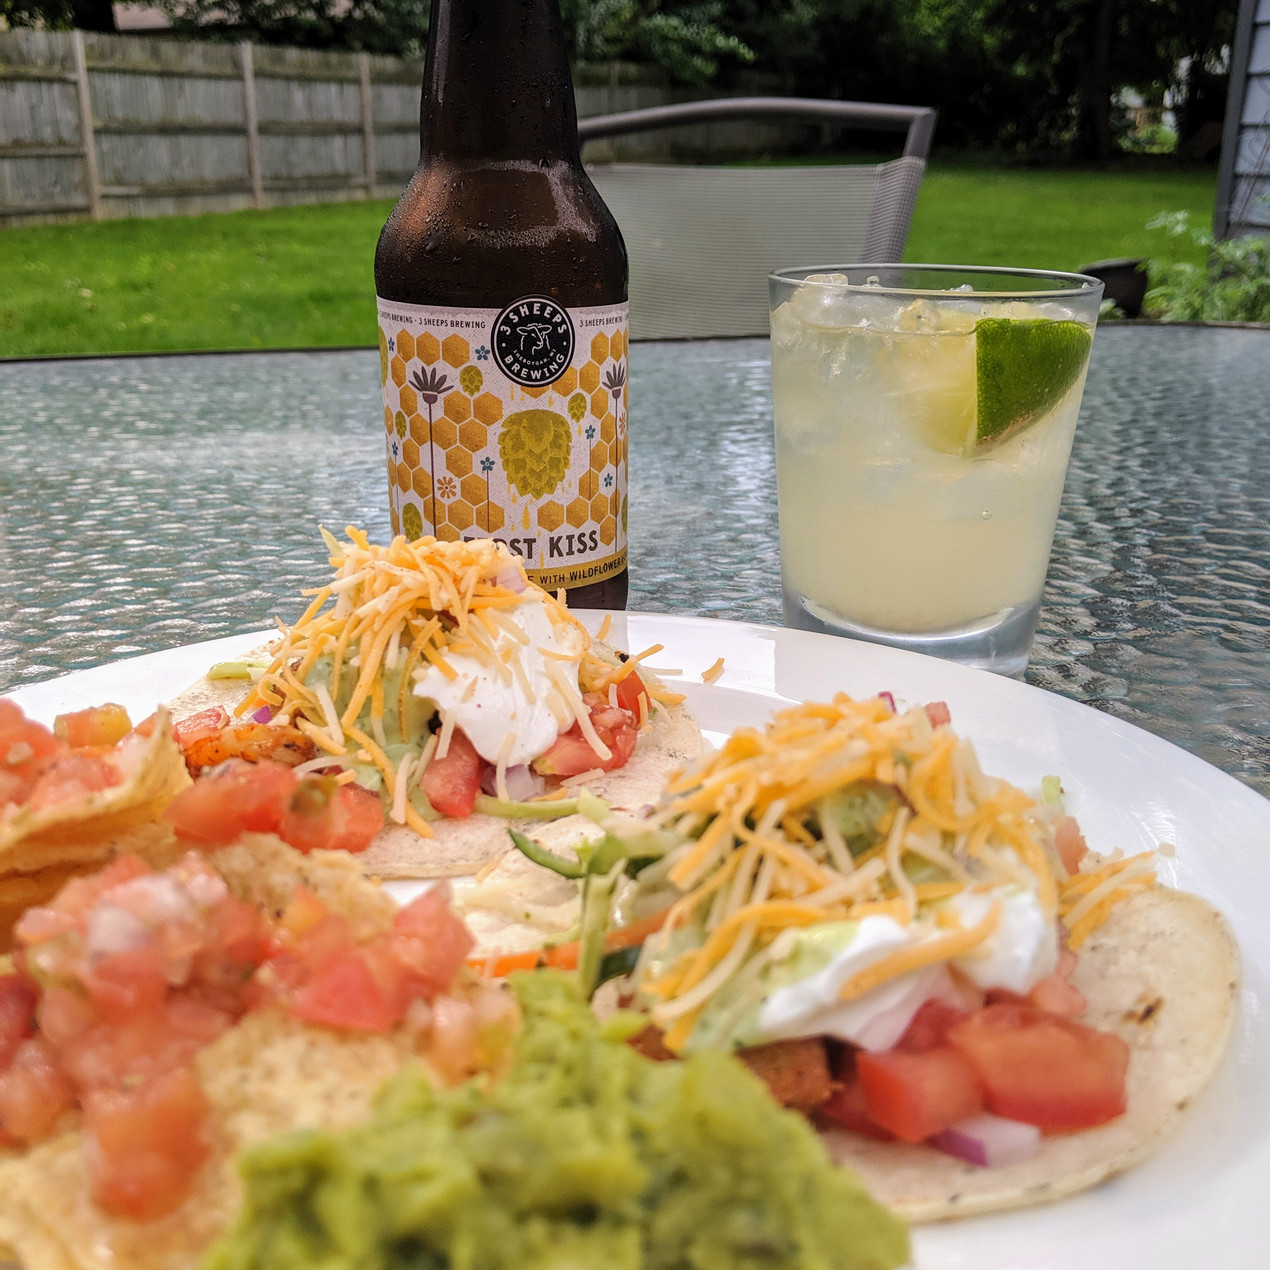 Shrimp tacos with beer and a beer-rita